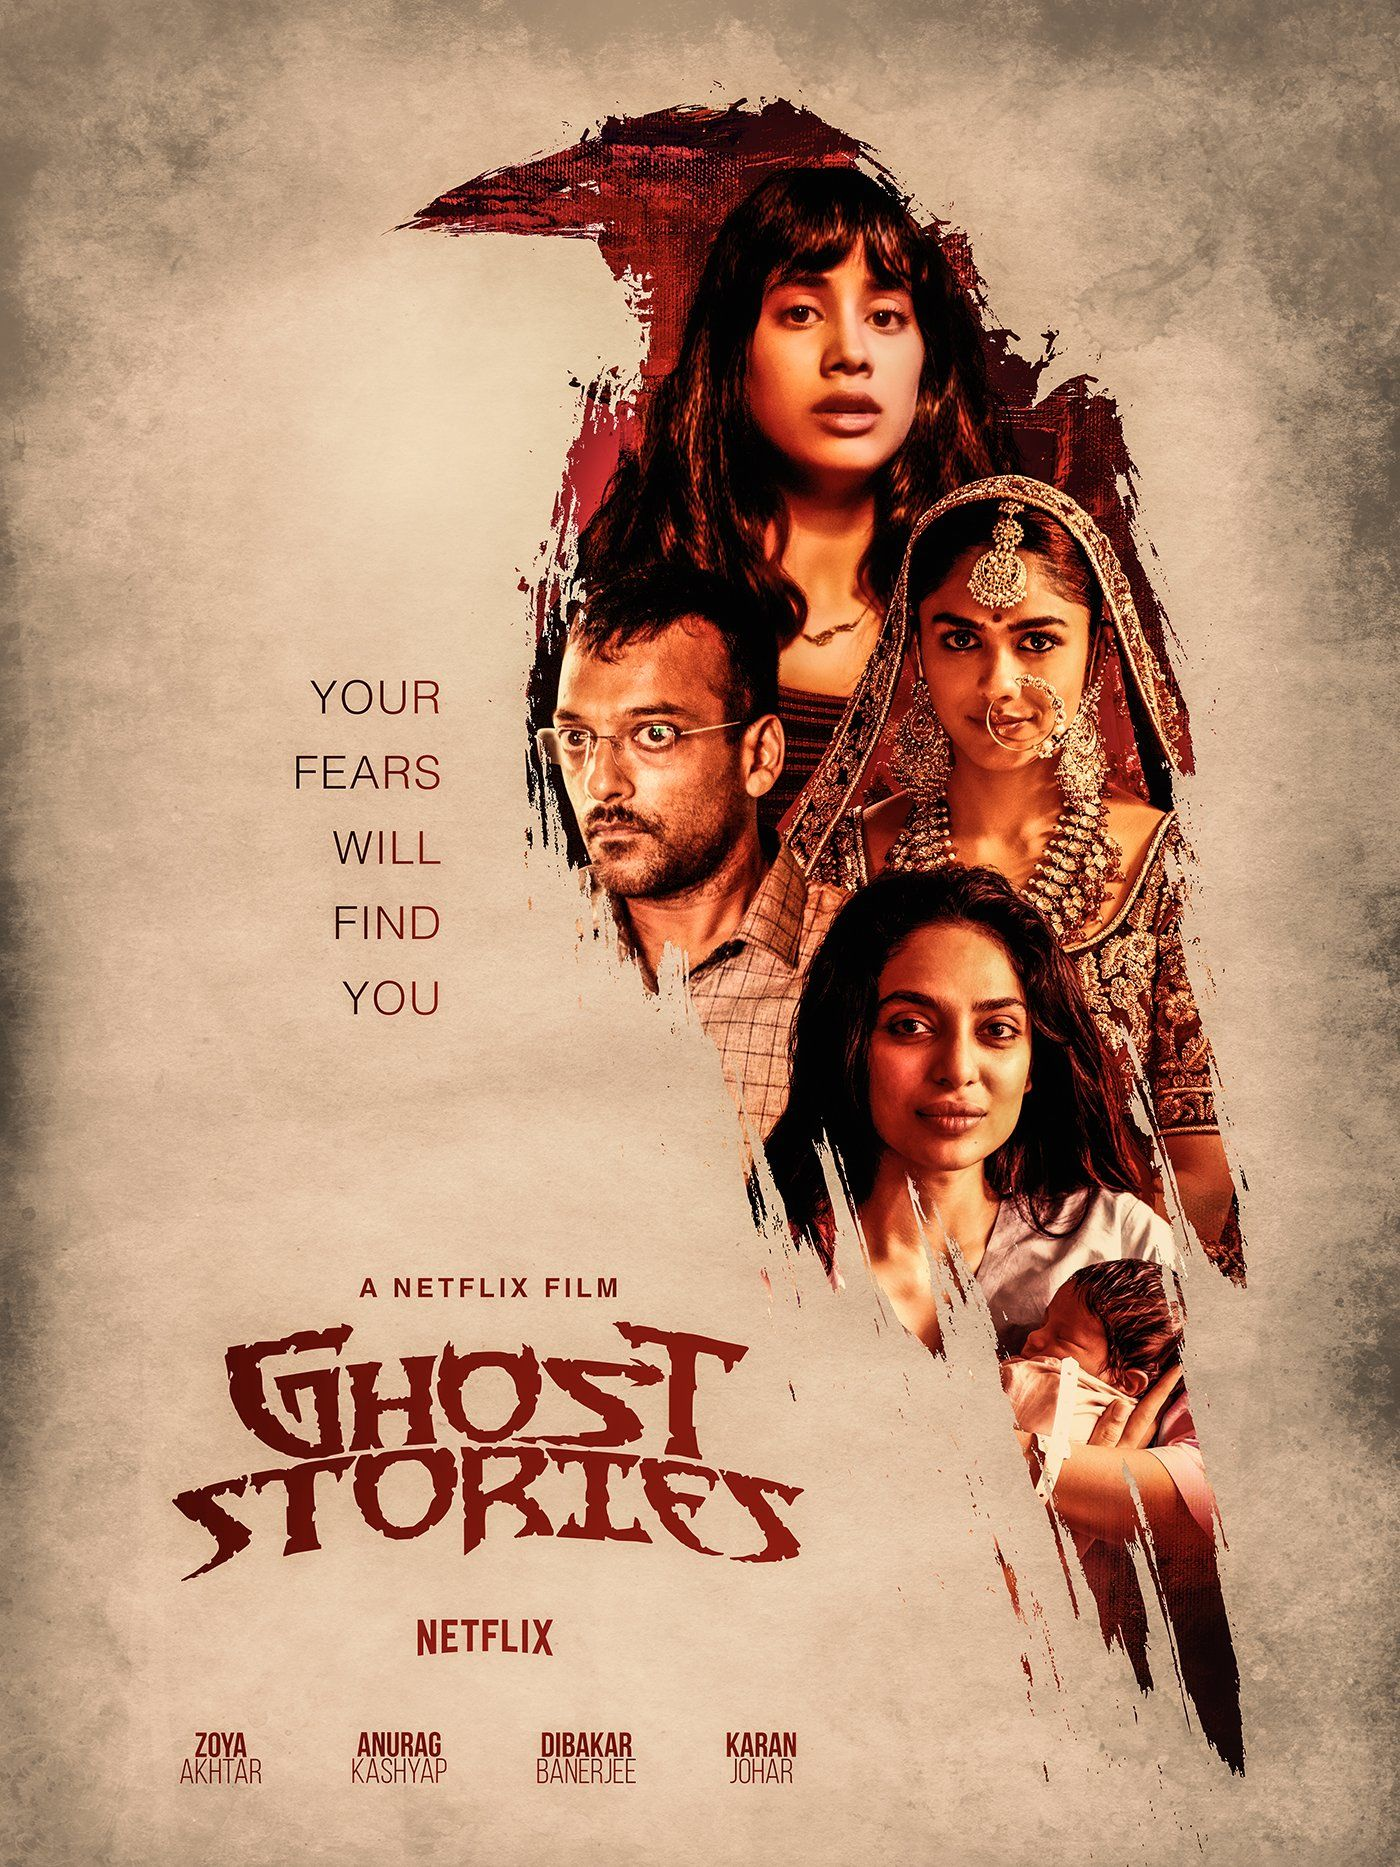 Crows are a common thread that tie a collection of four short tales, Nurse by Zoya Akhtar, Bird by Anurag Kashyap, Monster by Dibakar Banerjee and Granny by Karan Johar in Netflix' Ghost Stories. Photo Courtesy: Netflix